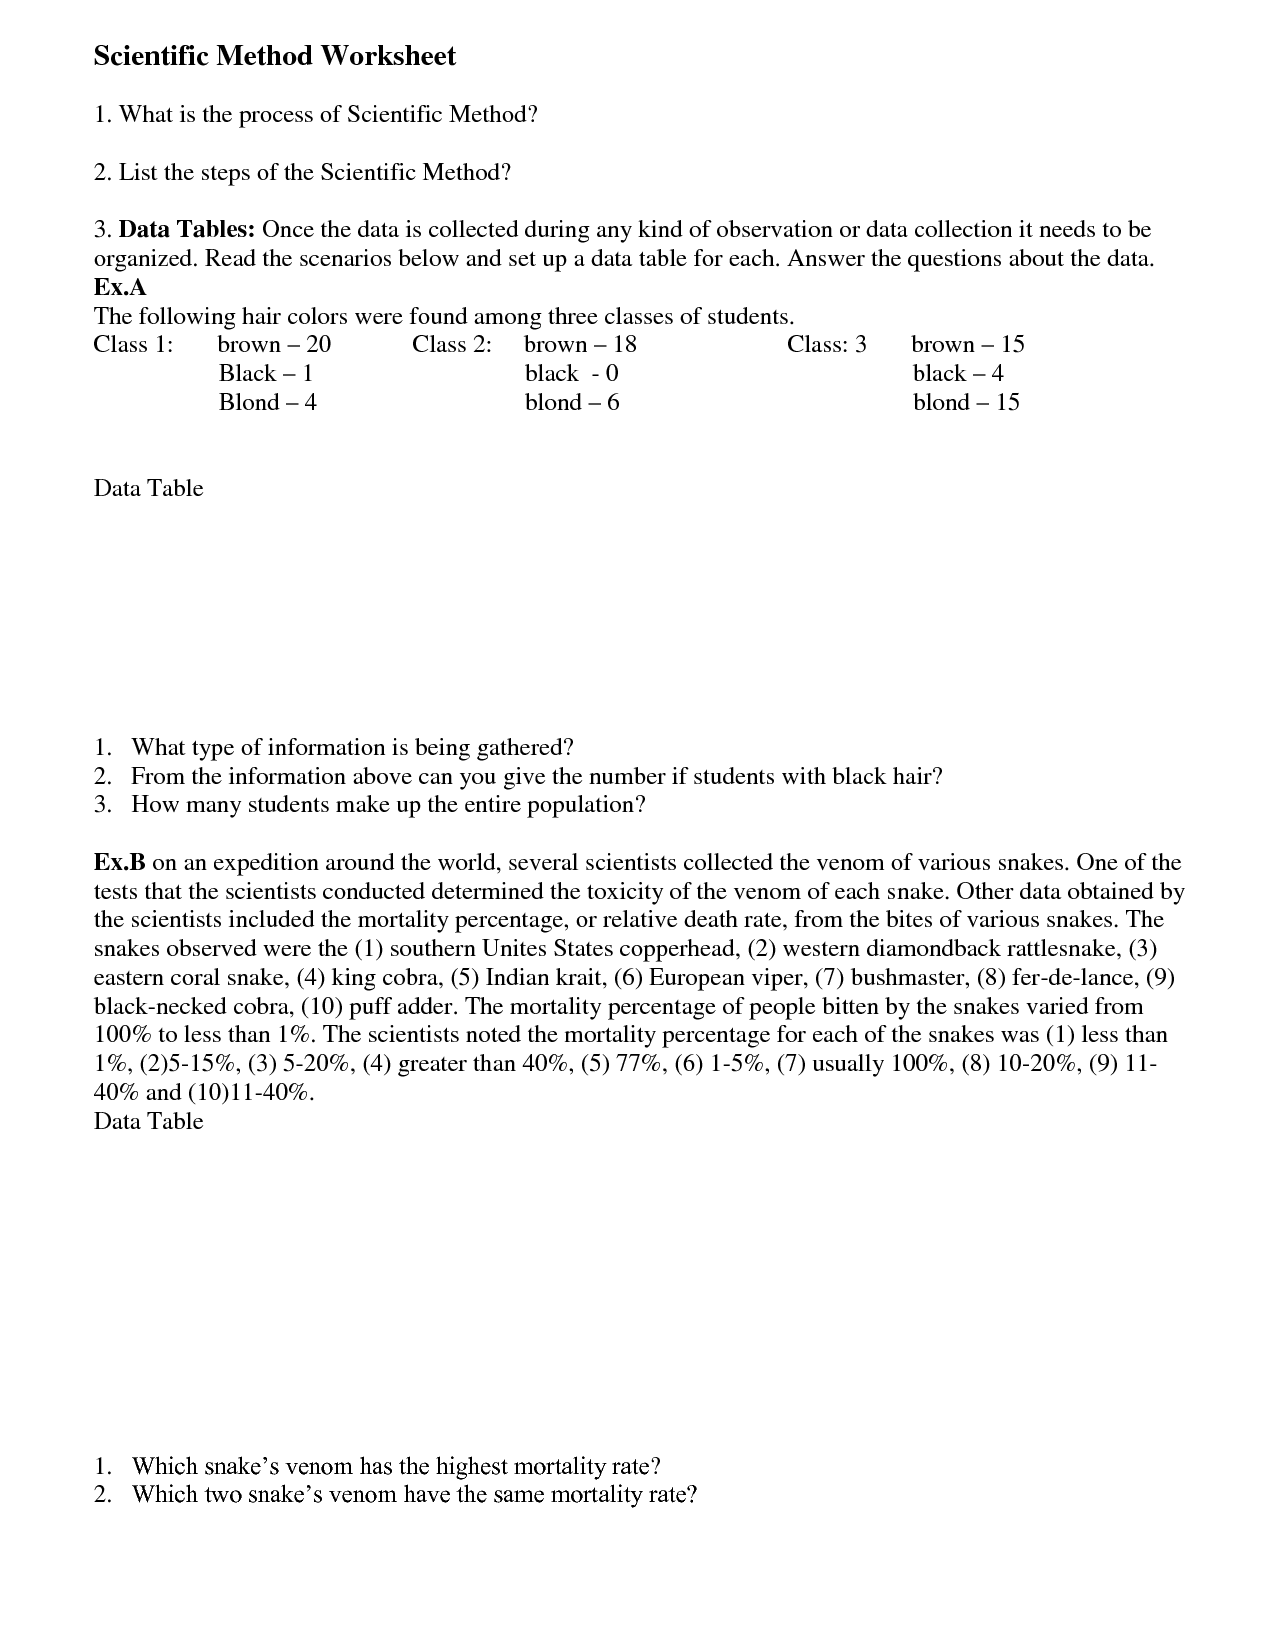 Scientific Method Scenarios Worksheet